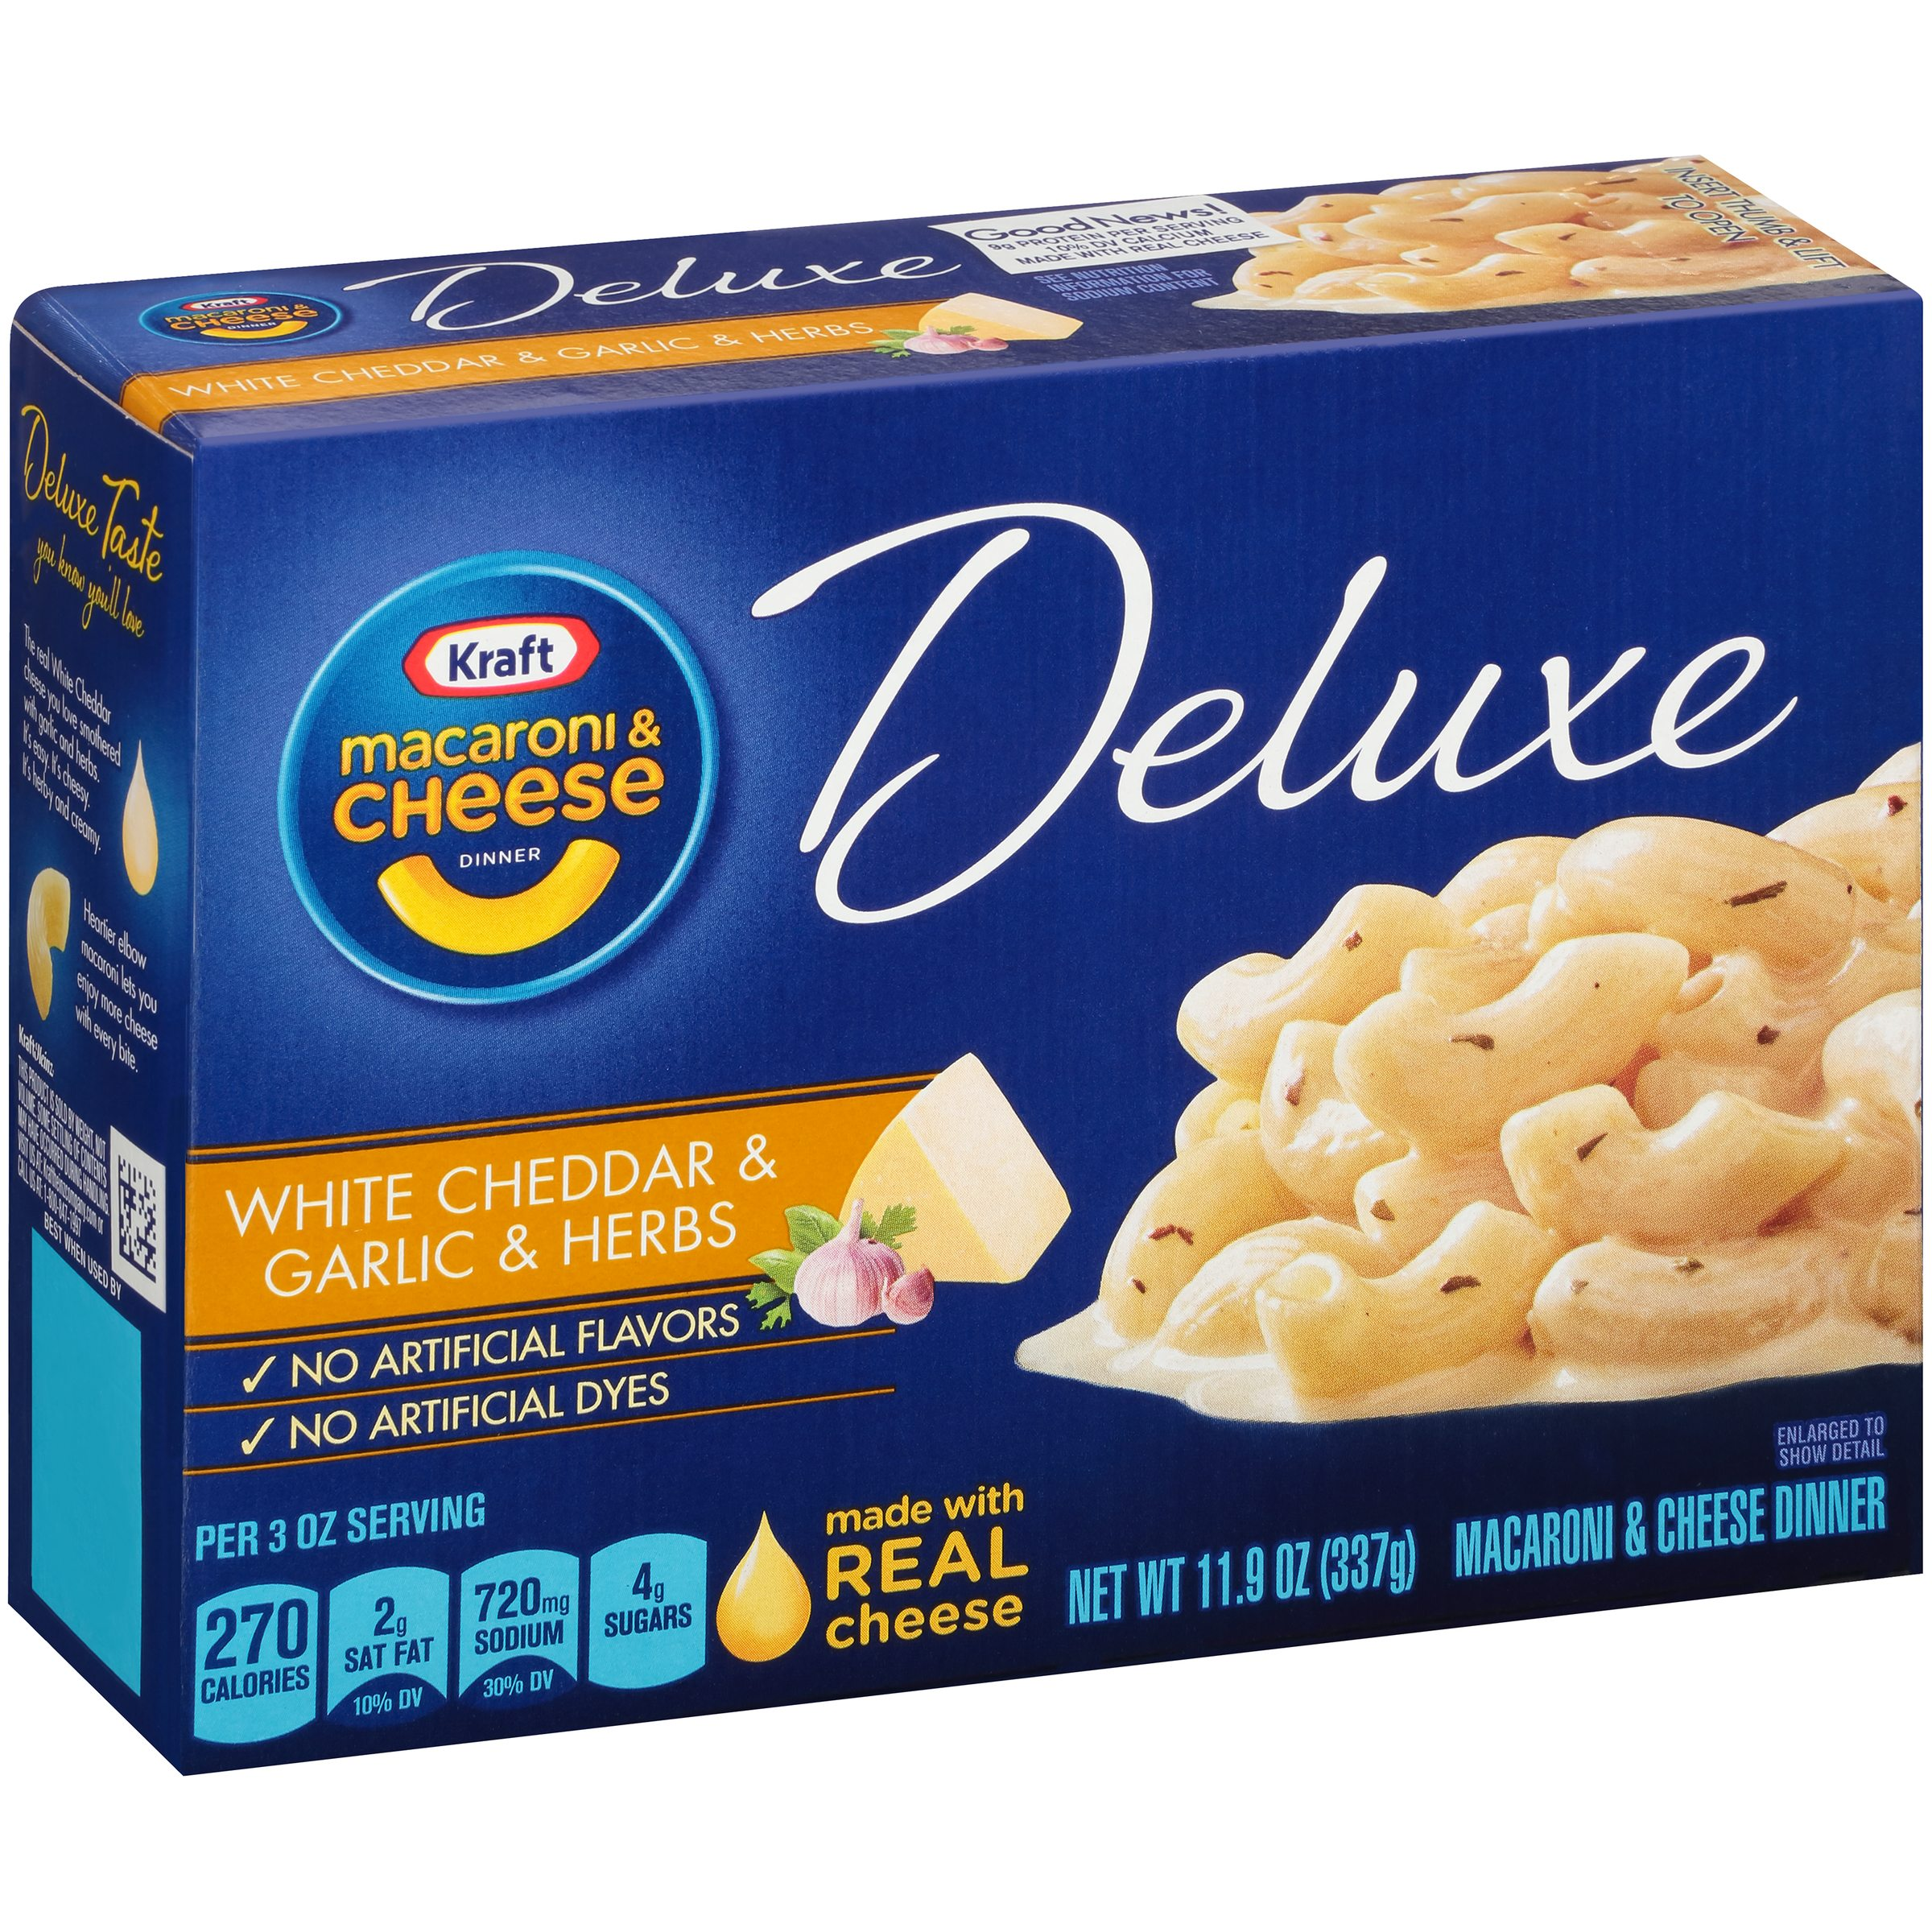 Kraft Deluxe White Cheddar & Garlic & Herbs Macaroni & Cheese Dinner 11.9 oz. Box by Kraft Heinz Foods Company